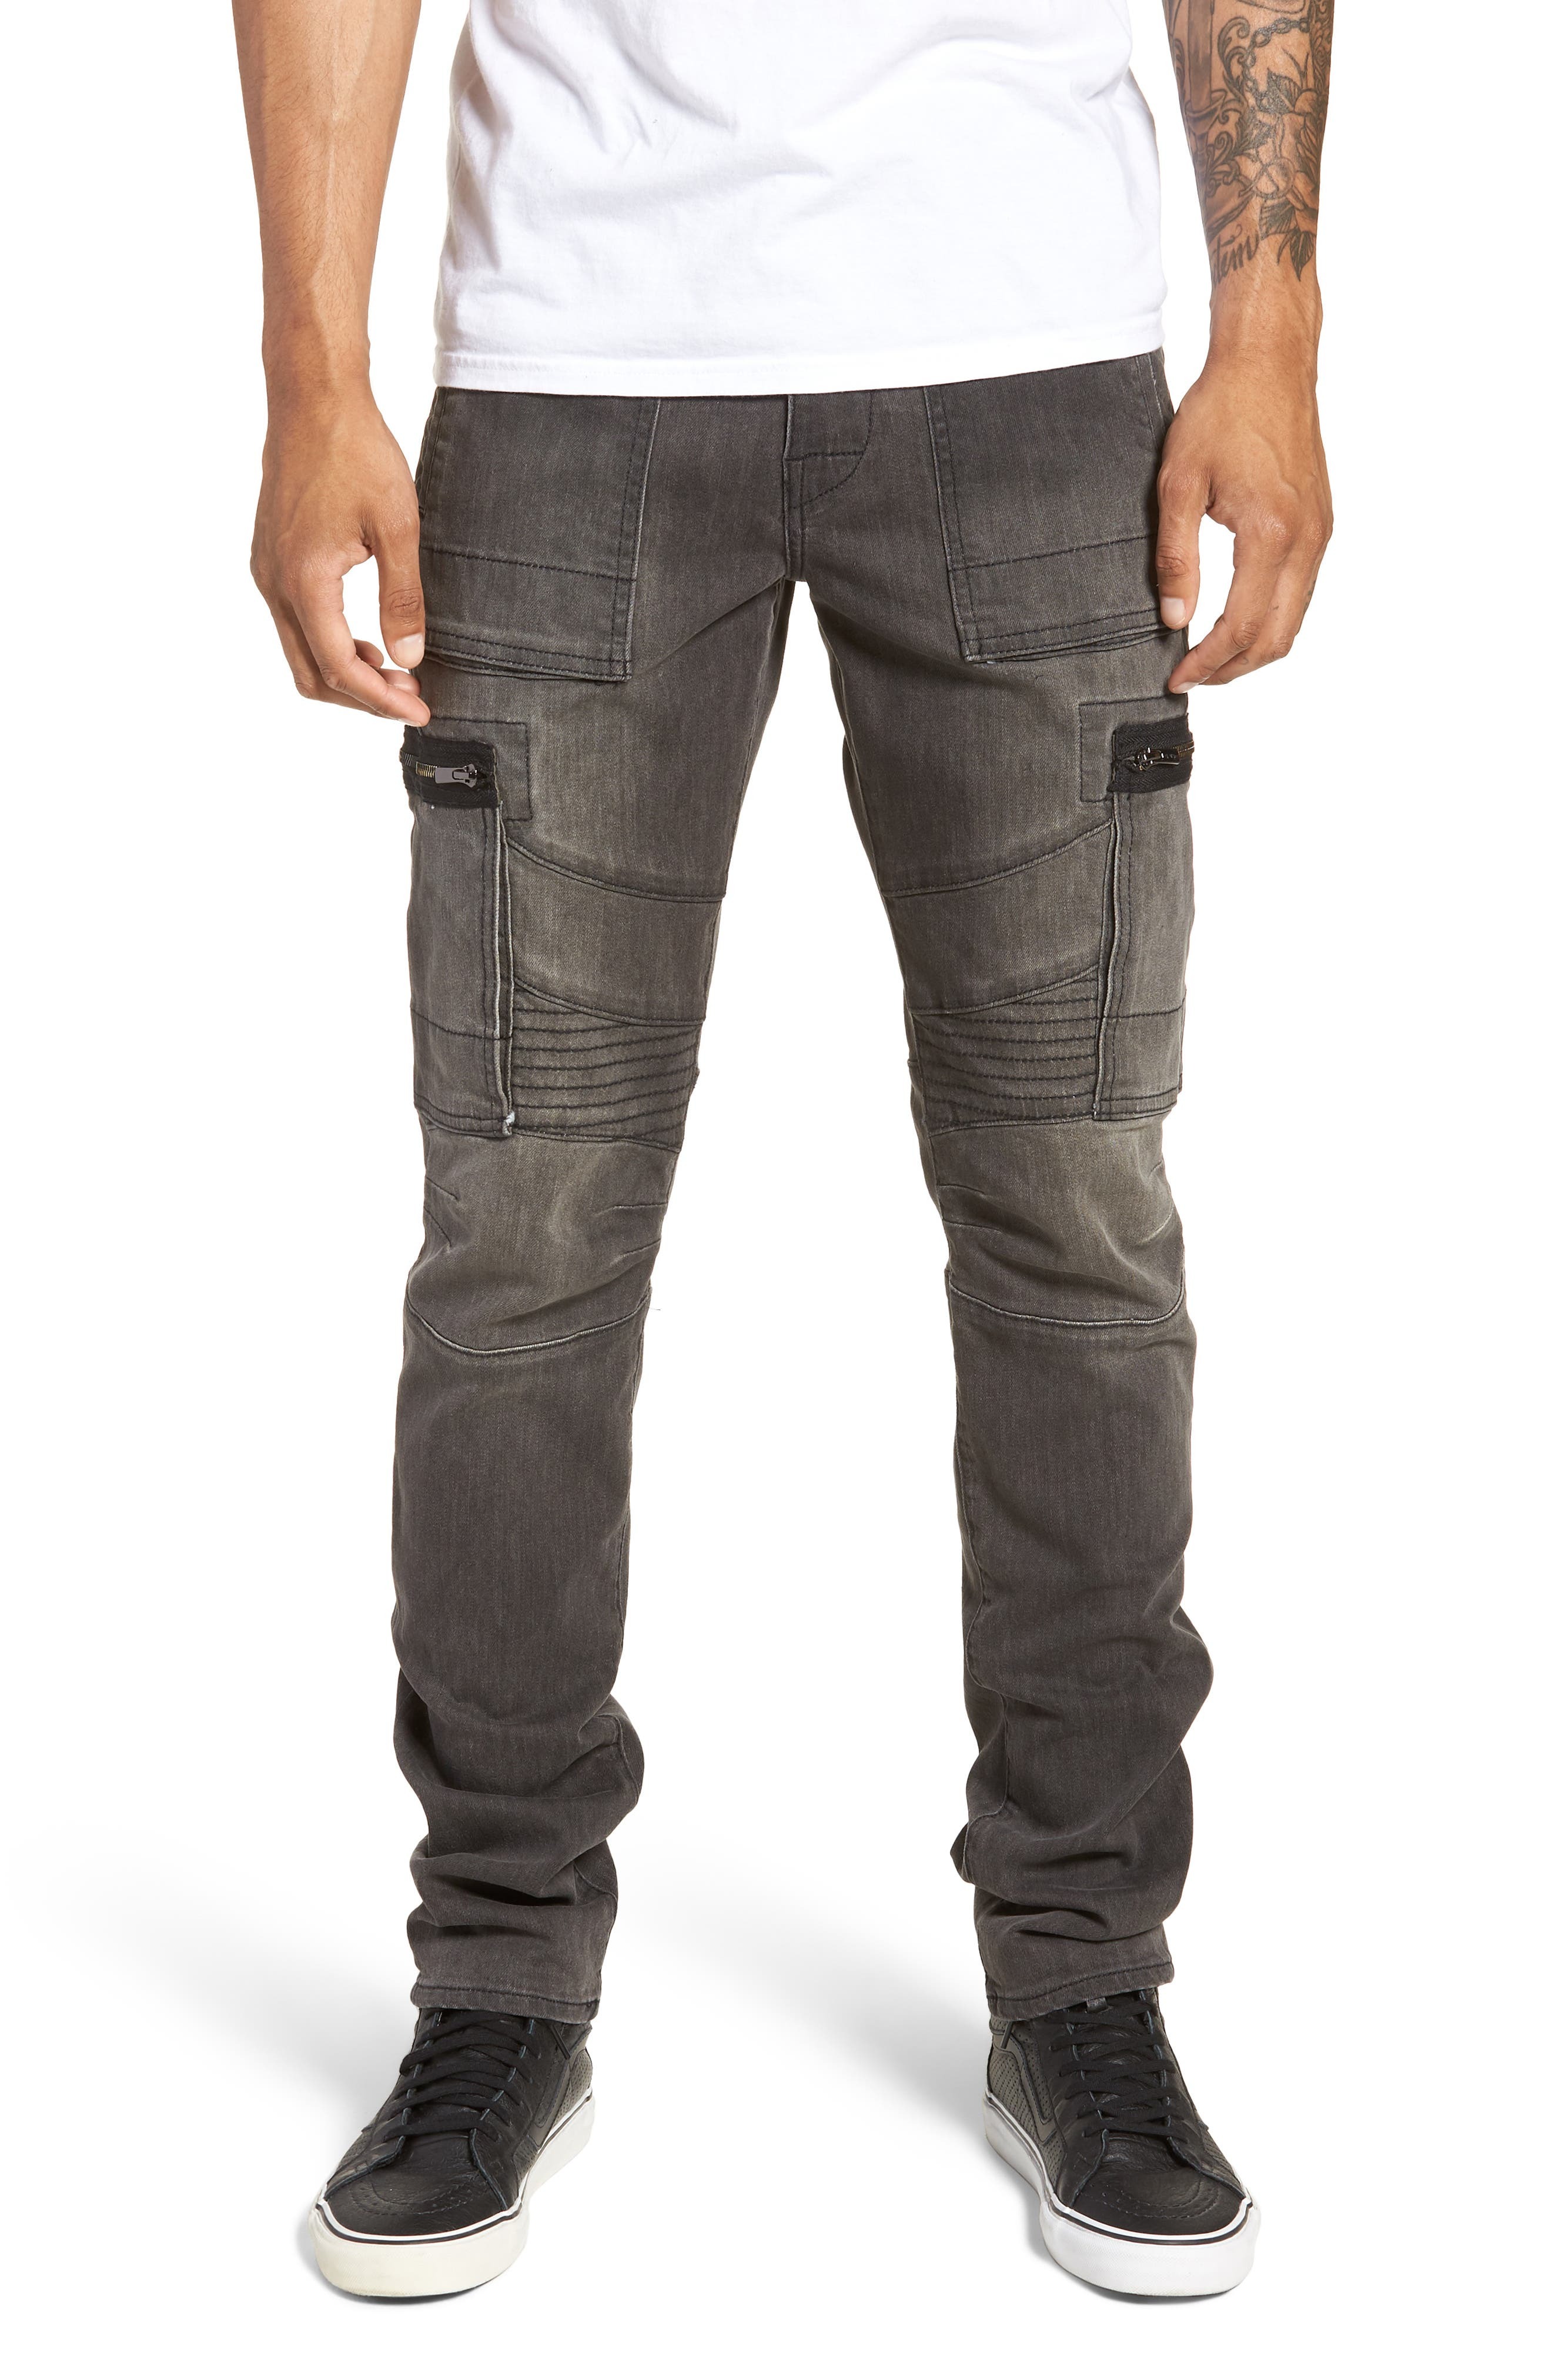 Nomad Straight Leg Jeans,                             Main thumbnail 1, color,                             VOLCANIC ROCK